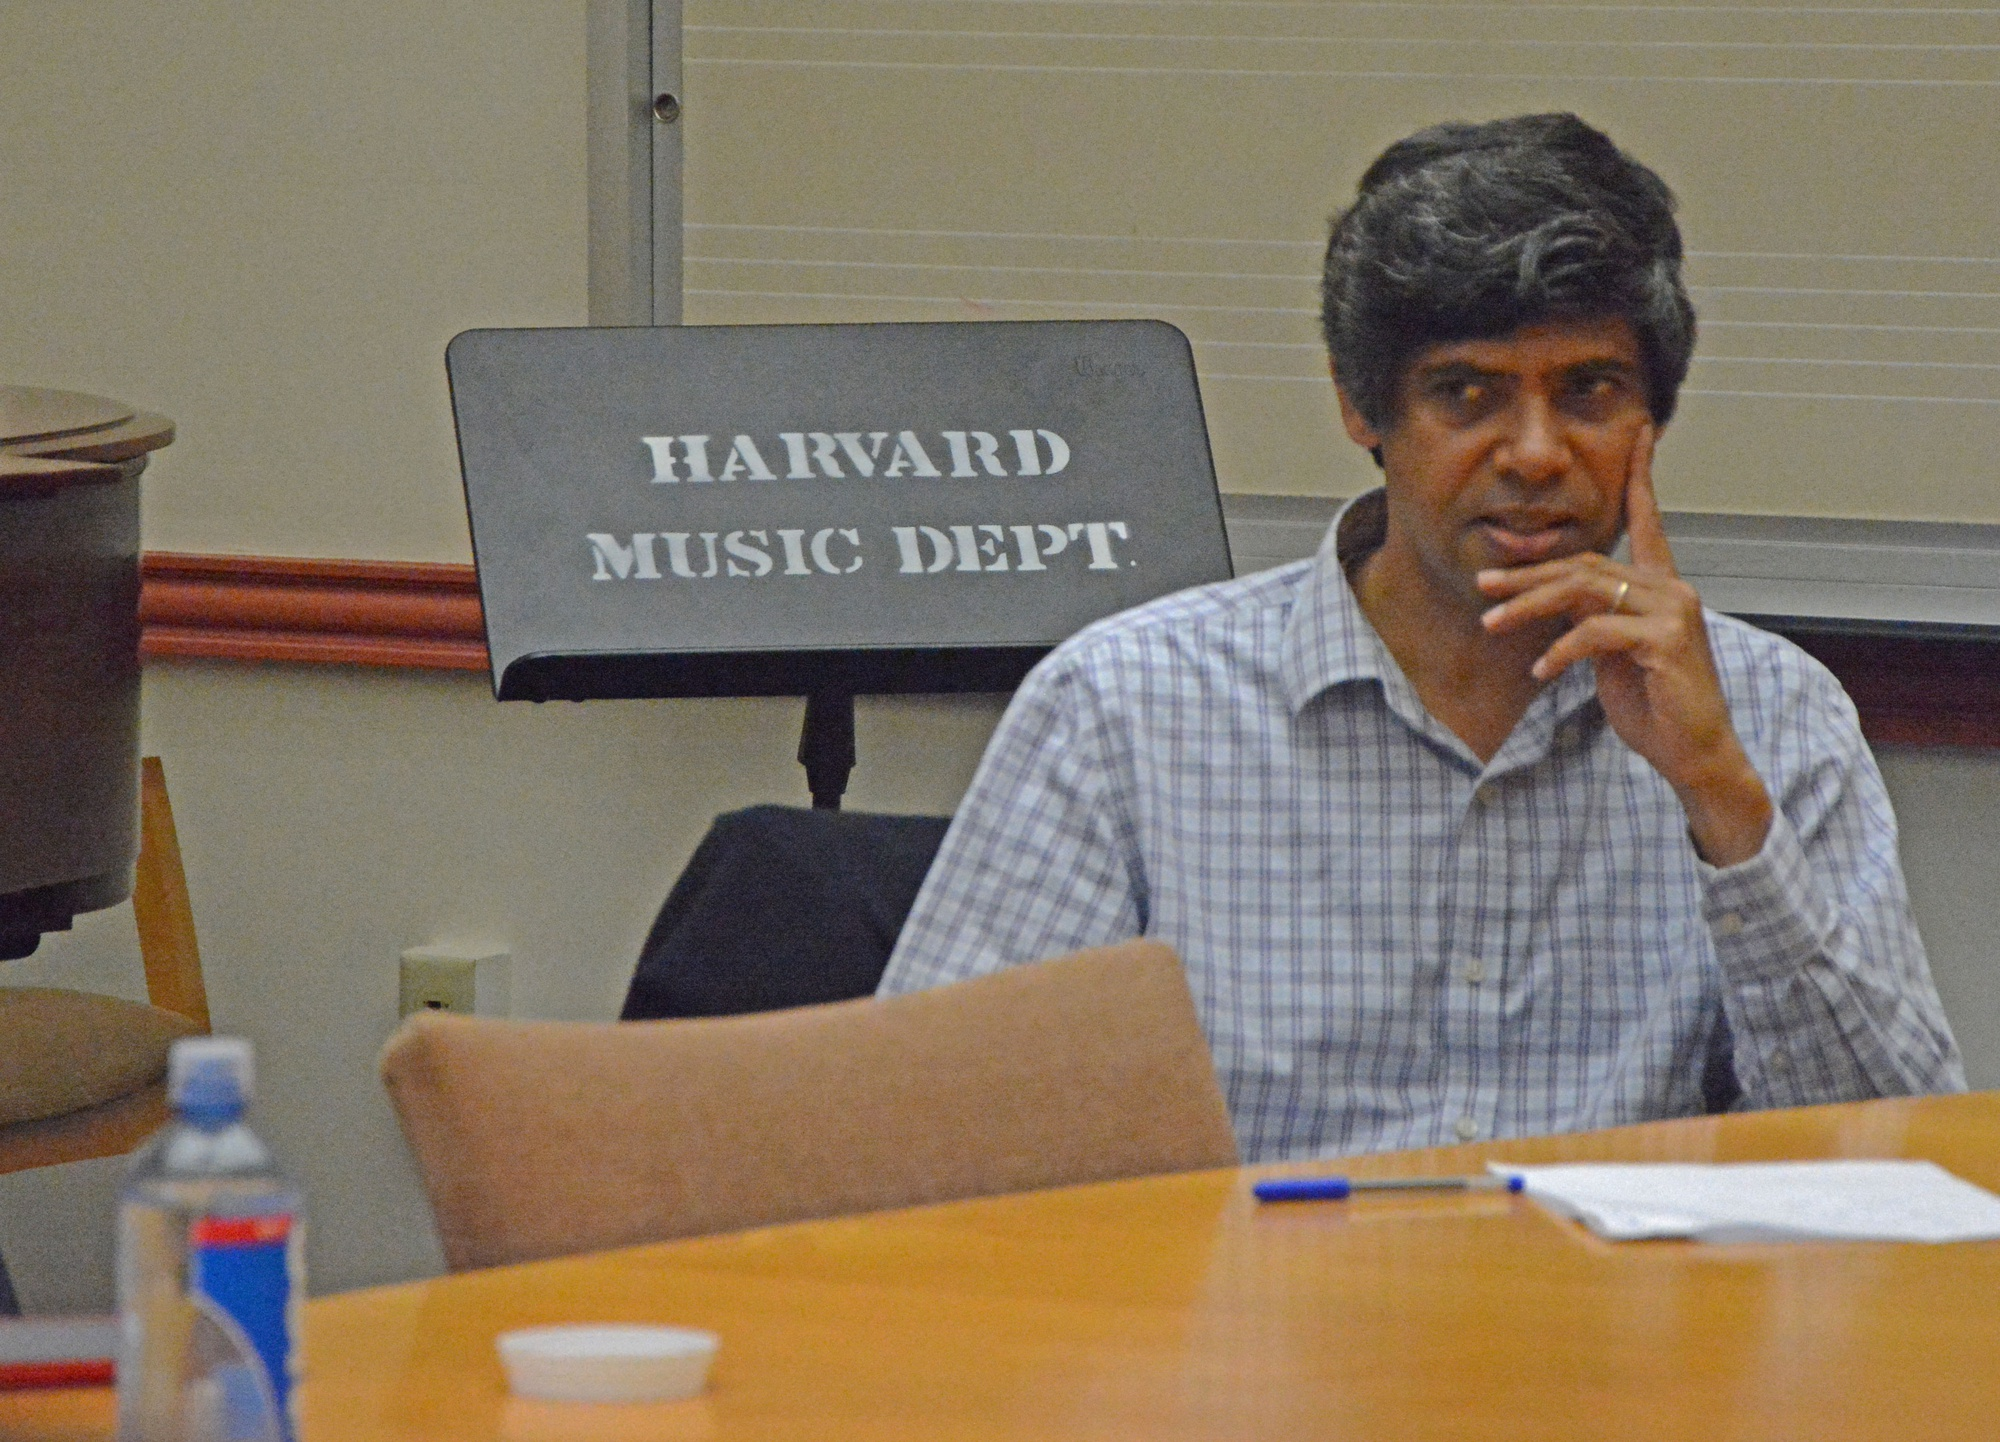 Aniruddh D. Patel, a professor at Tufts University, talks about his course on cognitive science and music with Harvard students and faculty in the music department room on a Wednesday afternoon. They discussed different ways to redesign music concentration requirements.